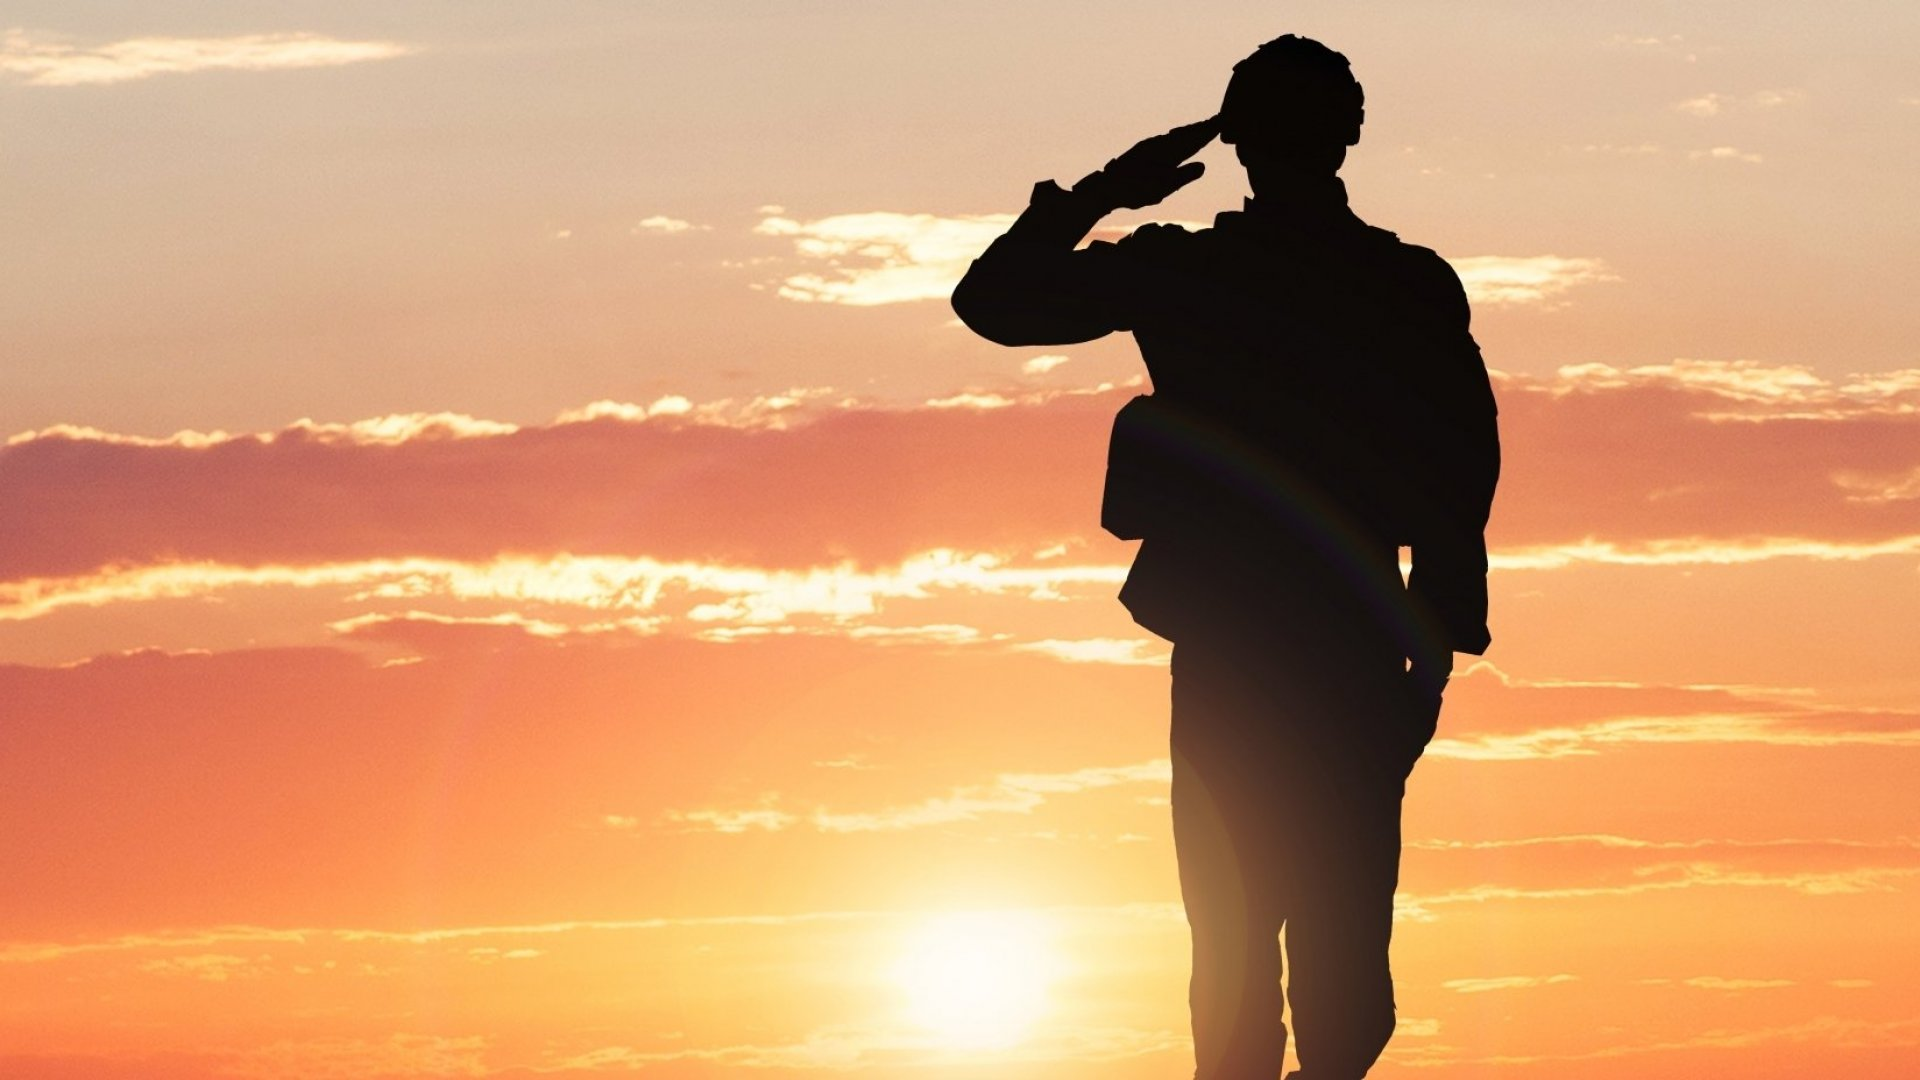 6 Principles for Exceptional Leadership Straight From the Army